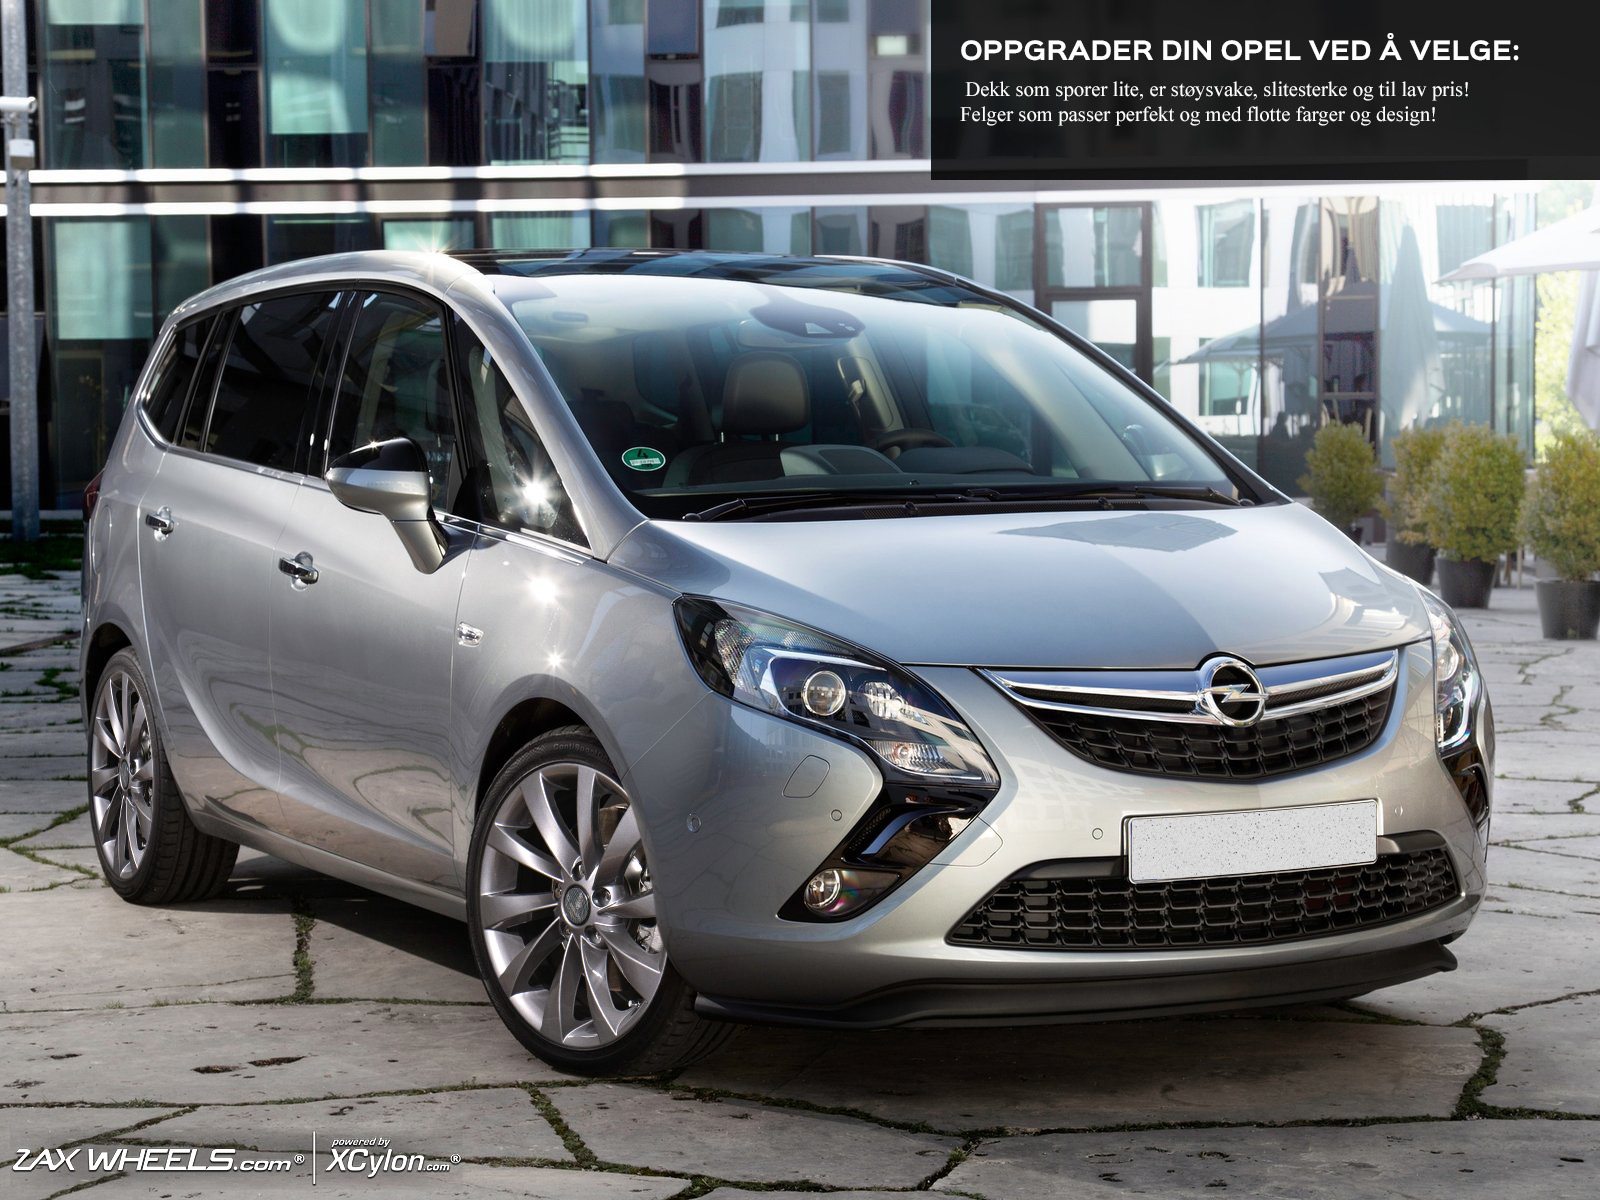 rims and tires for opel zafira a 98 05 megahjul. Black Bedroom Furniture Sets. Home Design Ideas